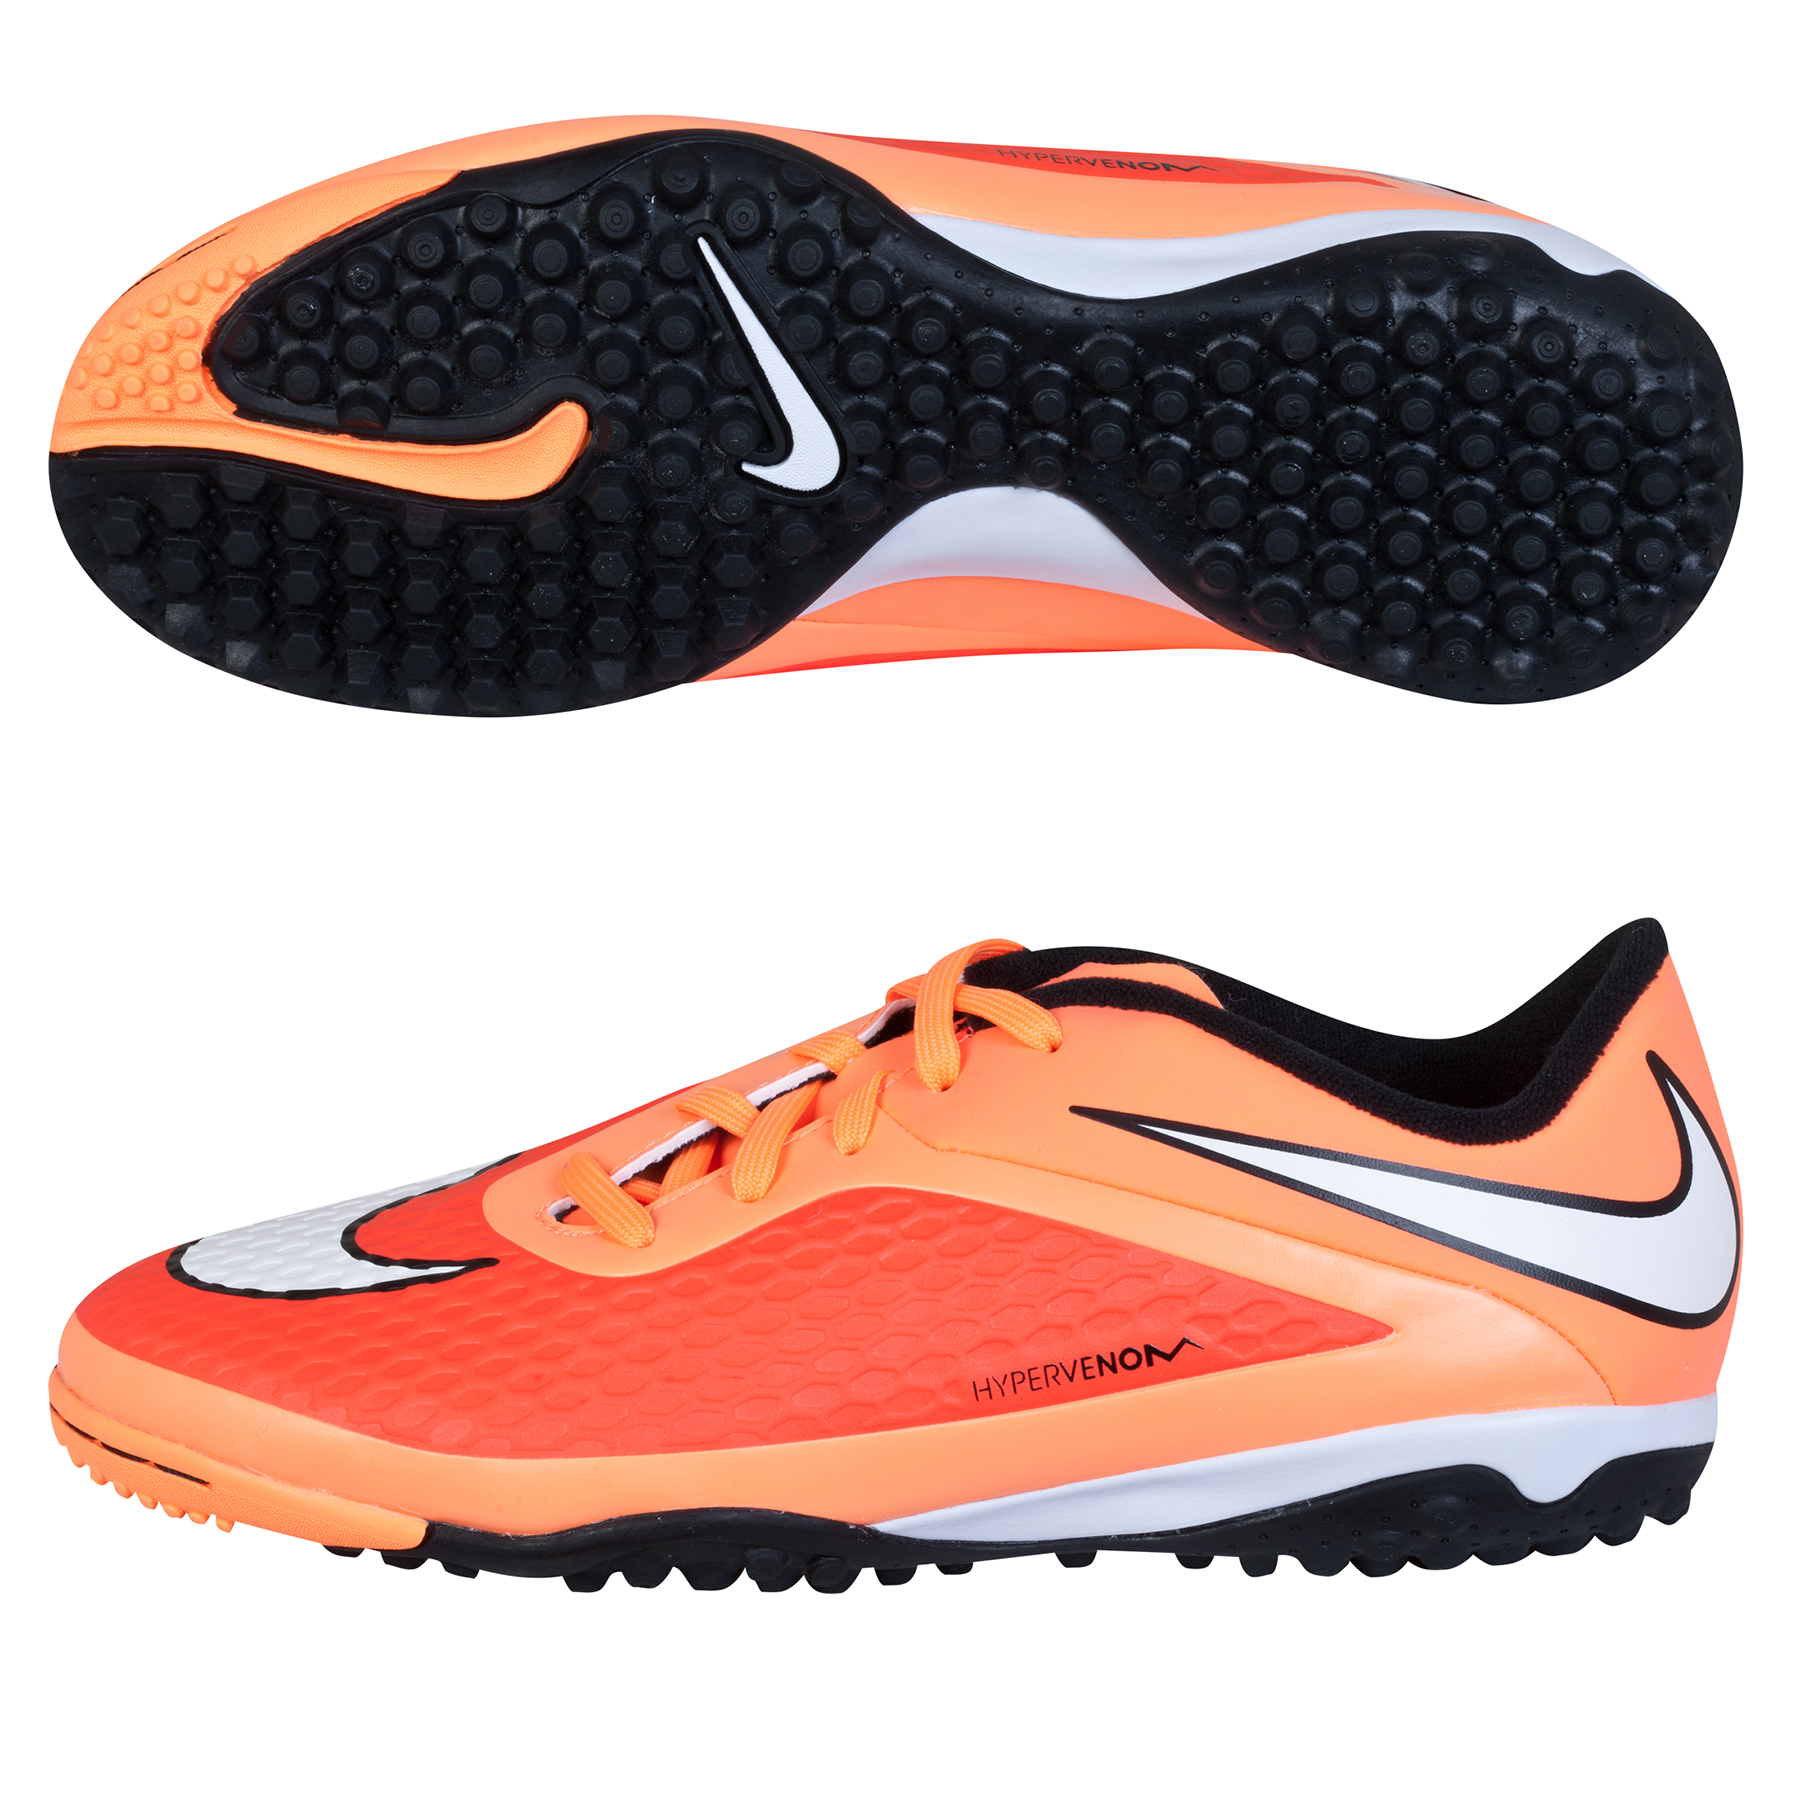 Nike Hypervenom Phelon Astroturf Trainers - Kids Orange